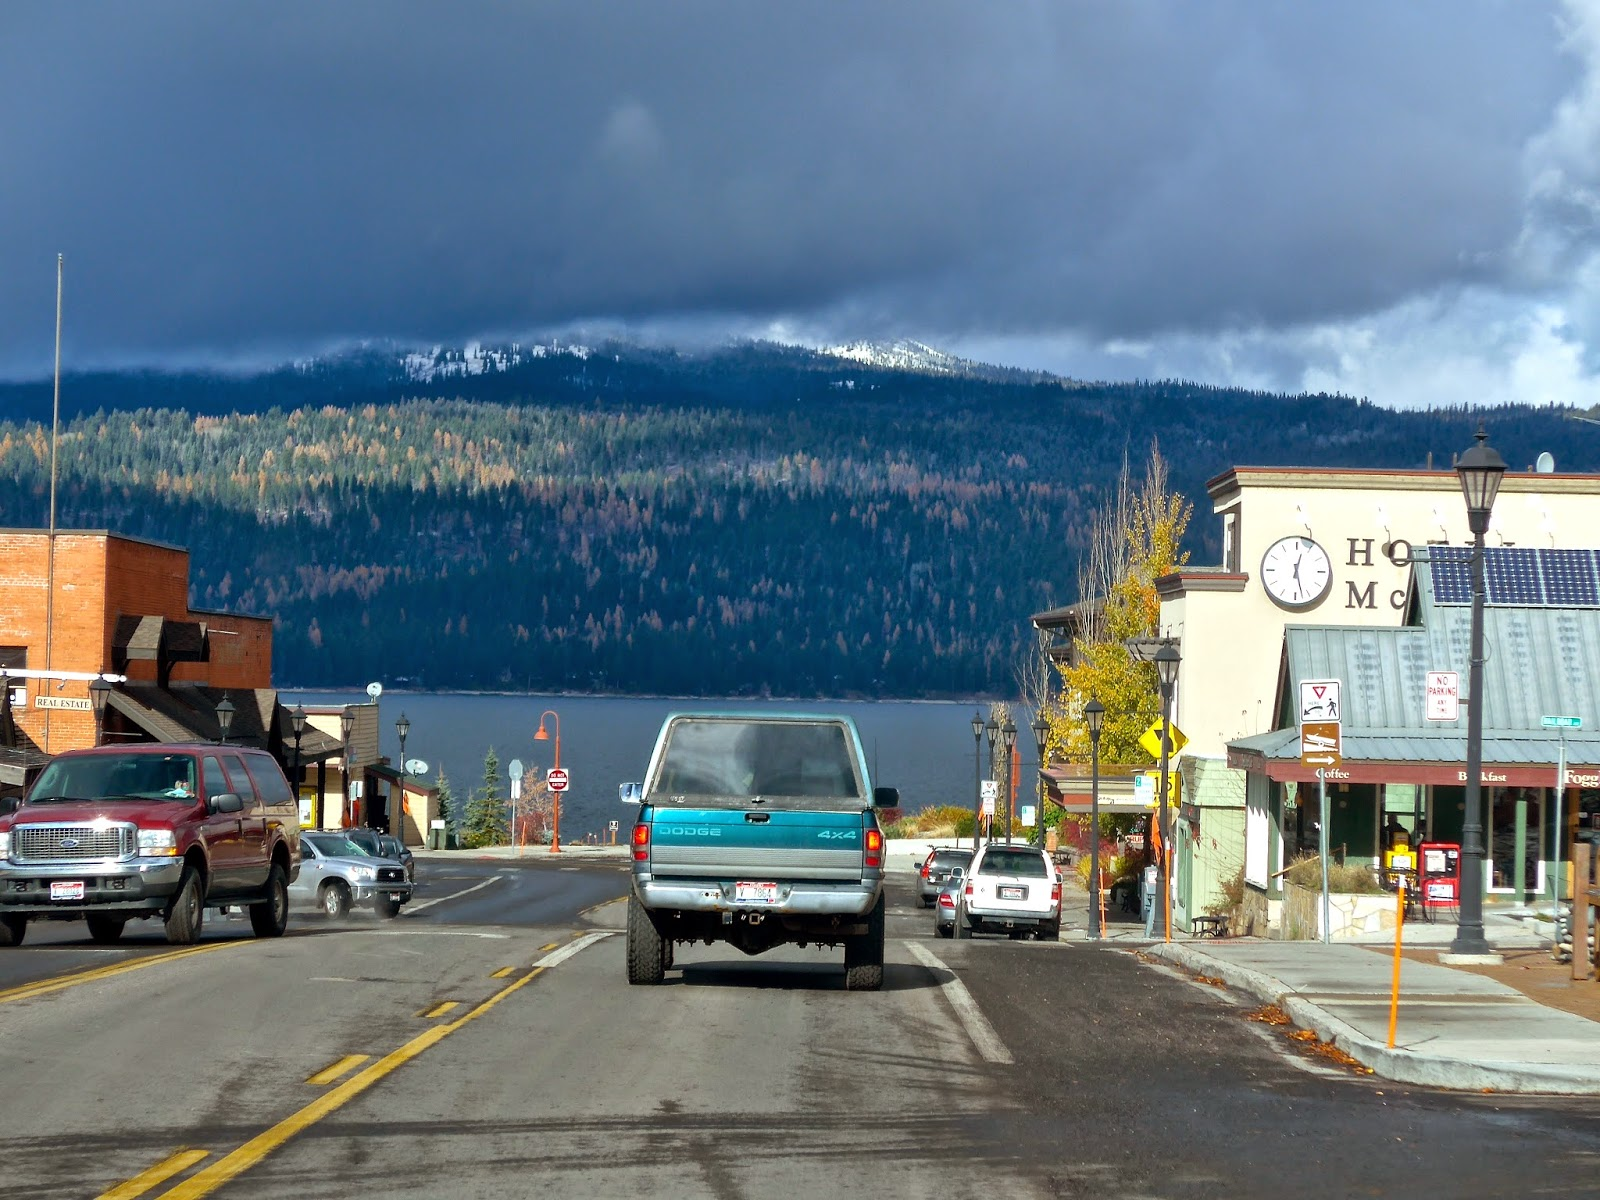 Clubhouse On Wheels Mccall Idaho